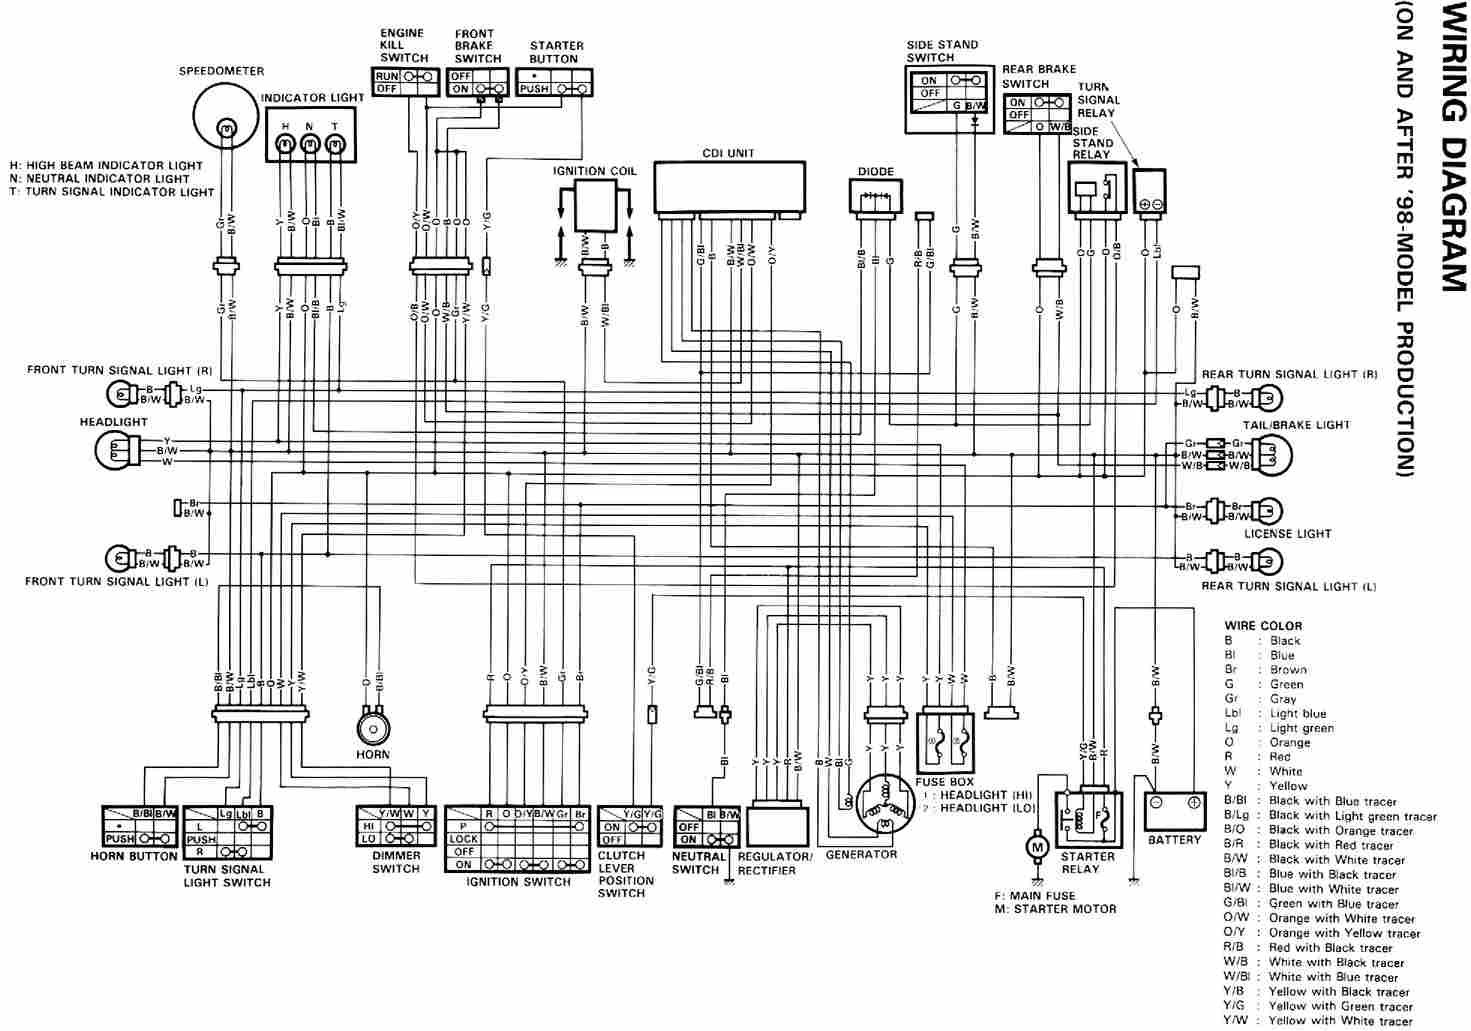 wiring diagrams honda ignition wiring diagram honda motorcycle wiring